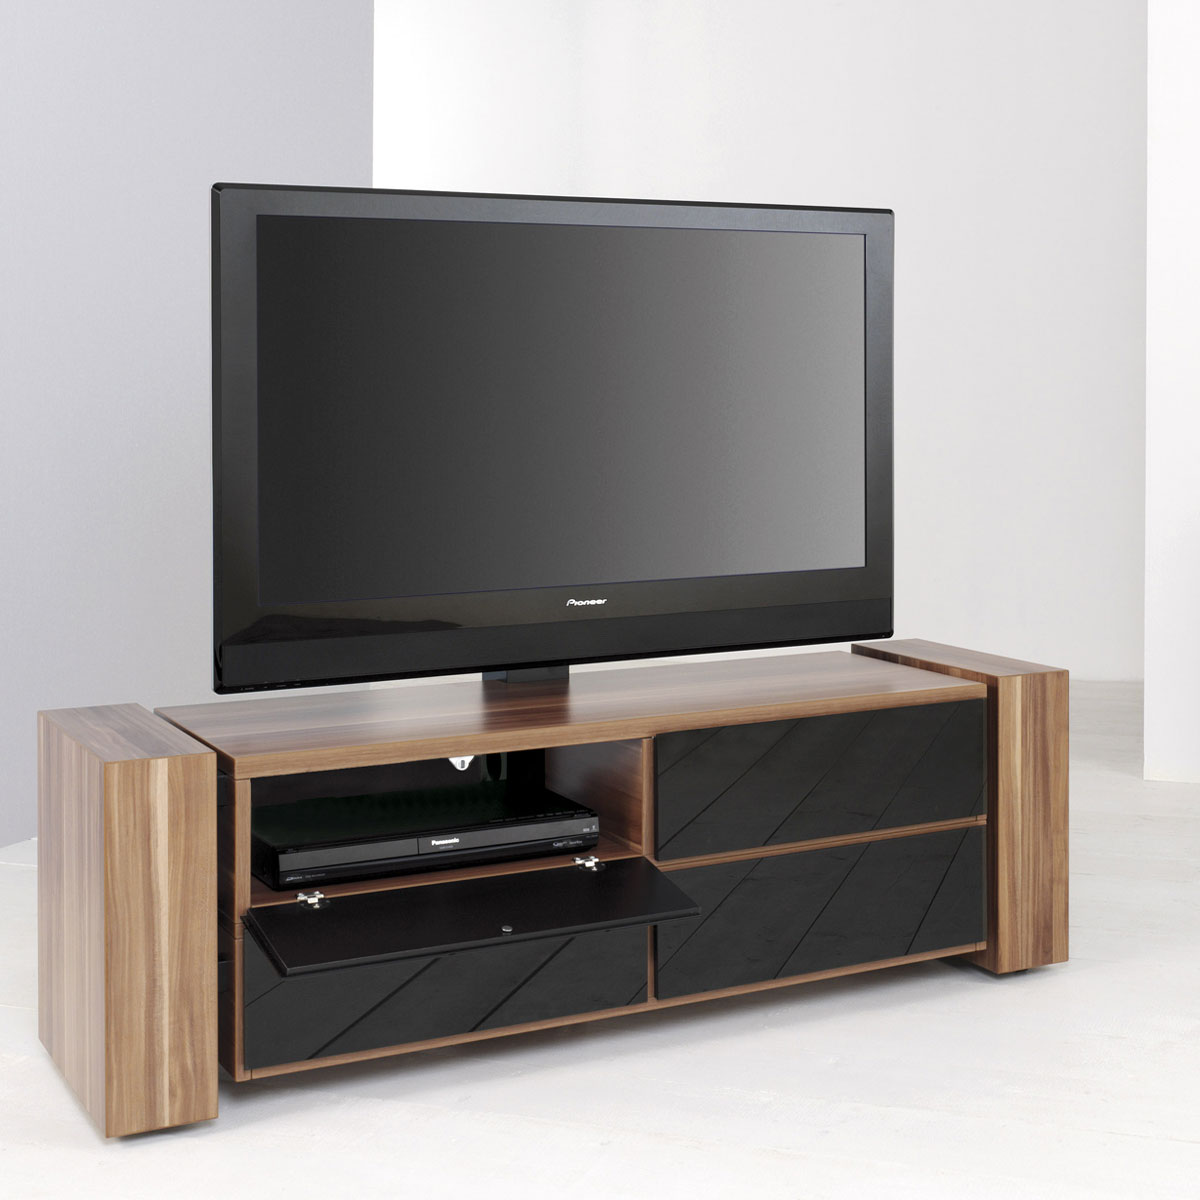 rack schrank cheap fabulous homcom tv lowboard board schrank tisch regal holz schwarz u eur ue. Black Bedroom Furniture Sets. Home Design Ideas